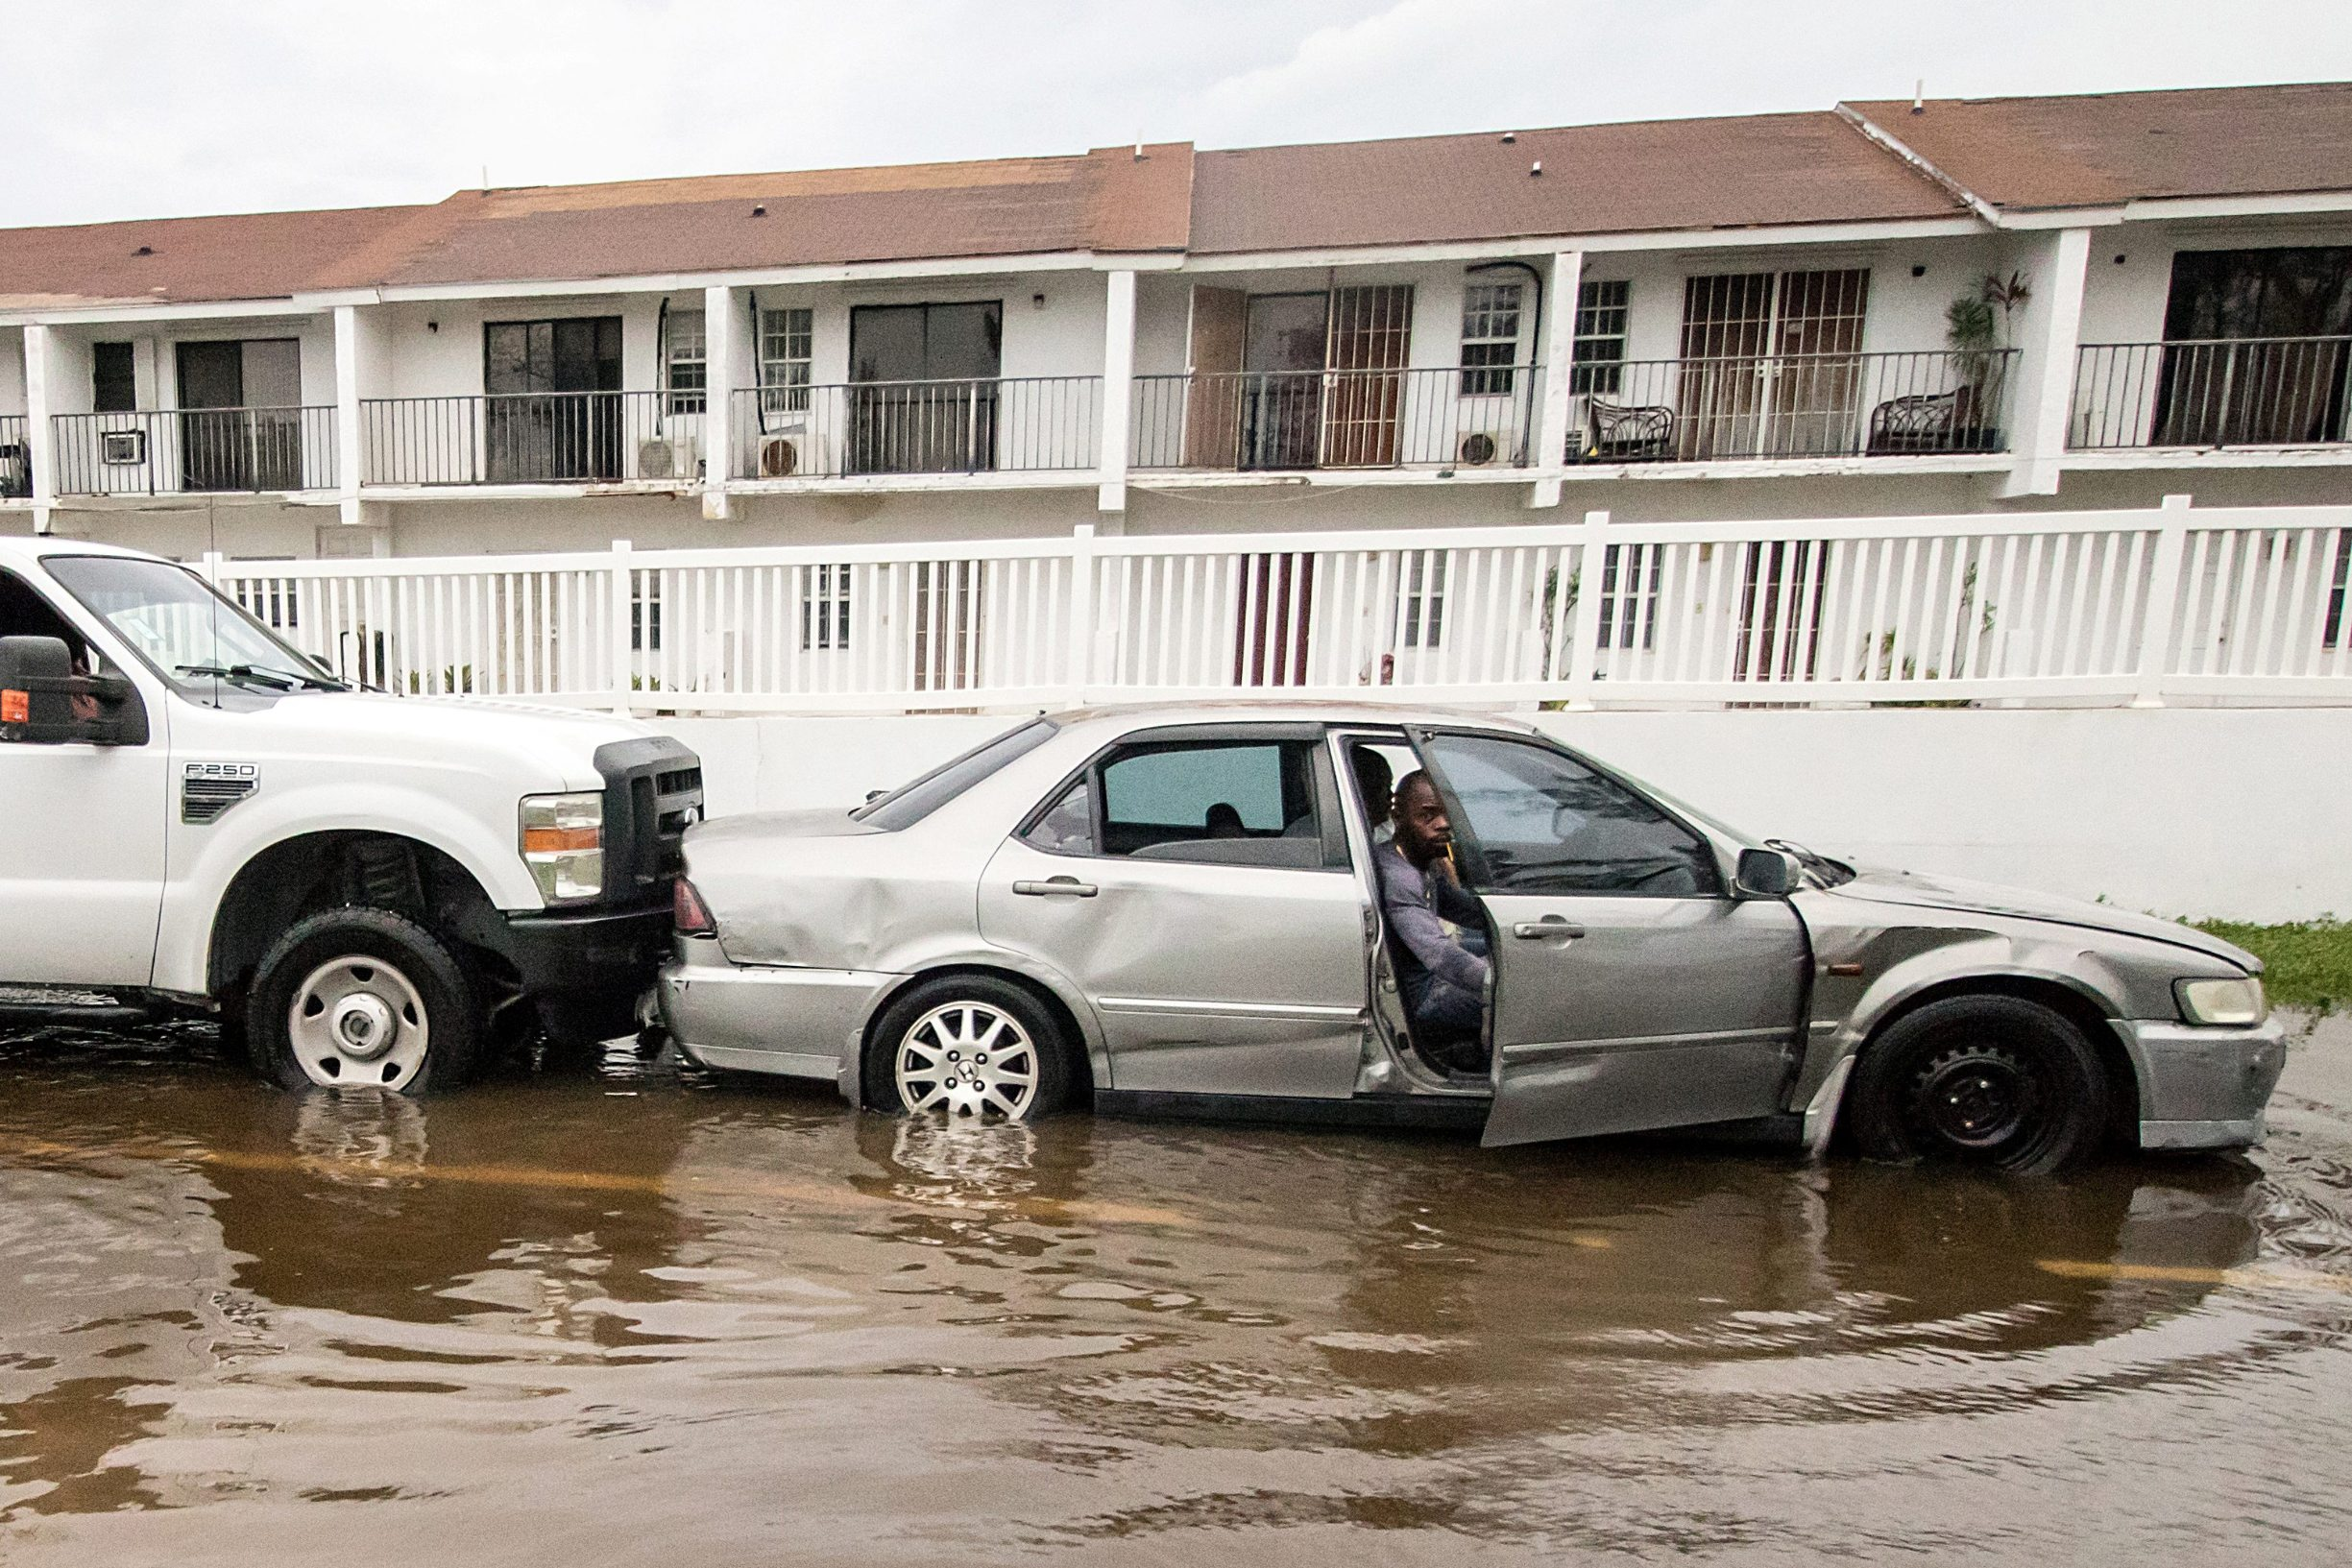 A man driving a stalled car is pushed by a truck through a flooded street after the effects of Hurricane Dorian arrived in Nassau, Bahamas September 2, 2019. REUTERS/John Marc Nutt MANDATORY CREDIT. NO RESALES. NO ARCHIVES